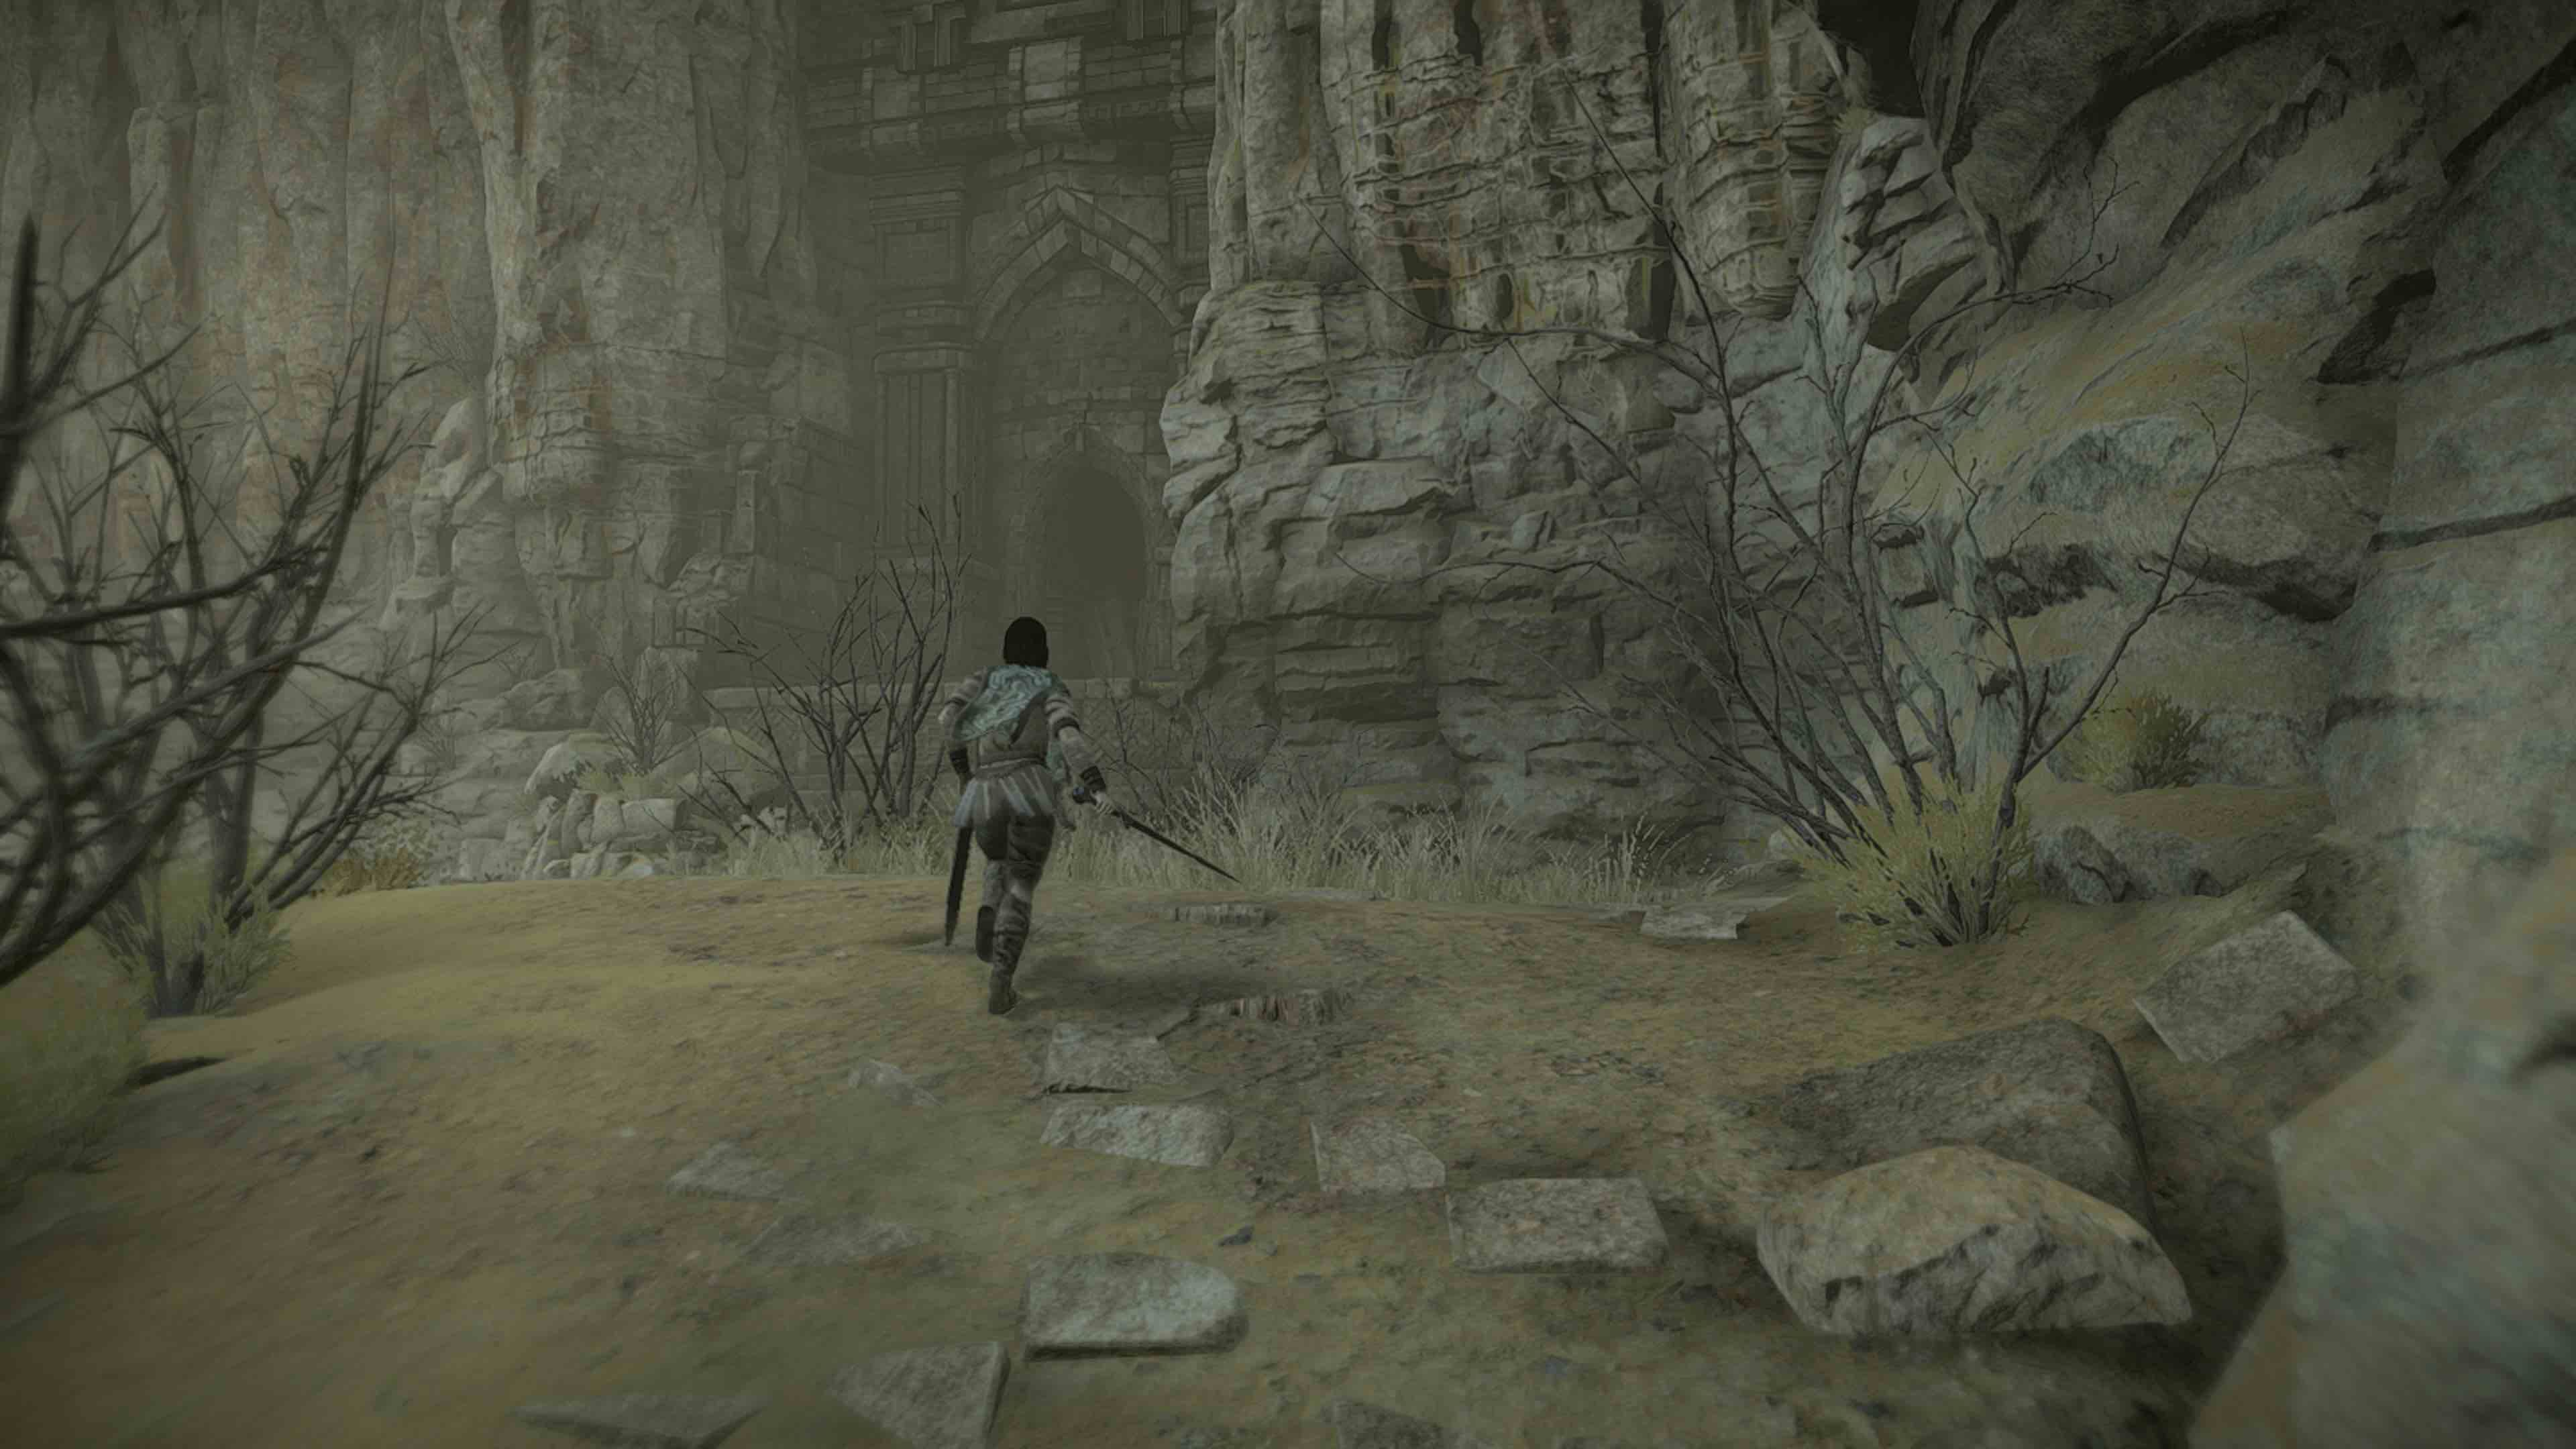 Shadow_of_the_Colossus_Coloso_11_2